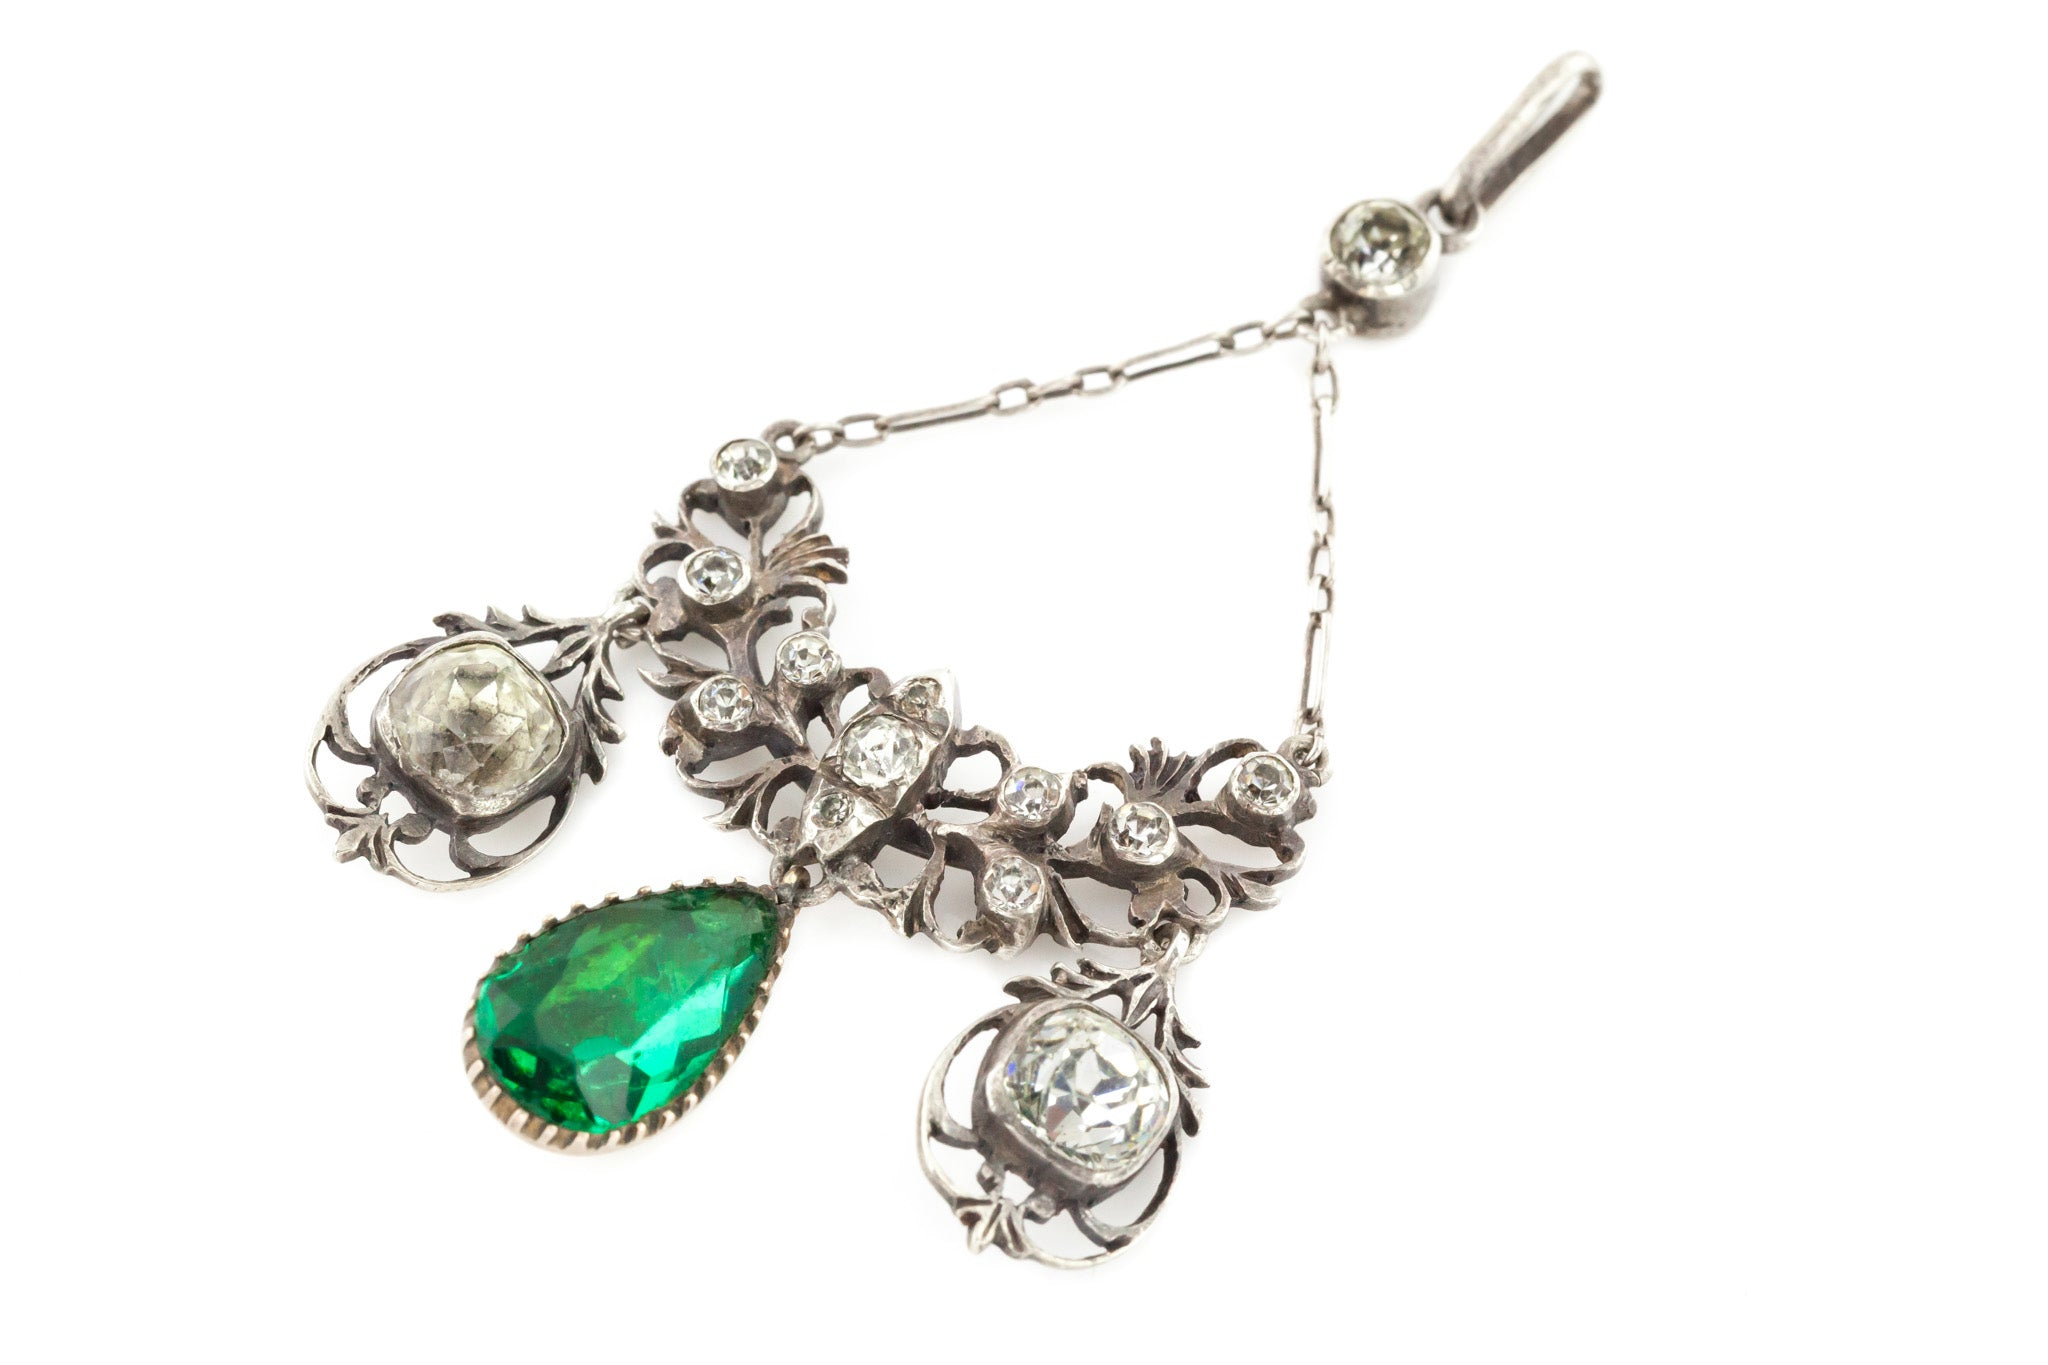 A small pendant with emerald and silver stones